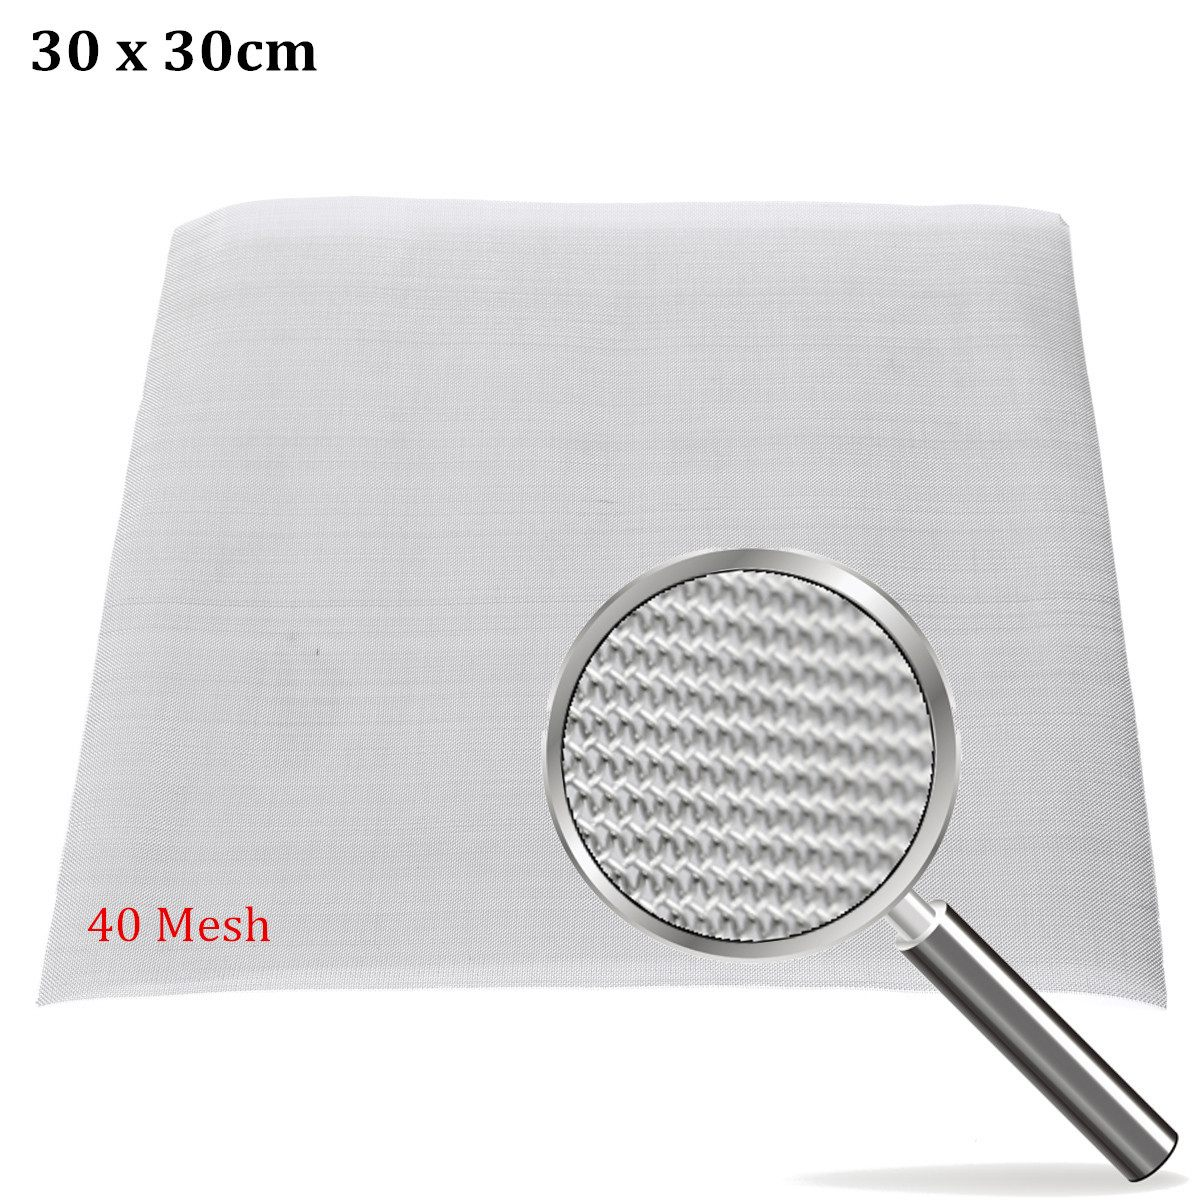 Doersupp NEW 40 Mesh / 425 Micron Stainless Steel Filter Filtration Woven Wire Screen Screen Filter 12